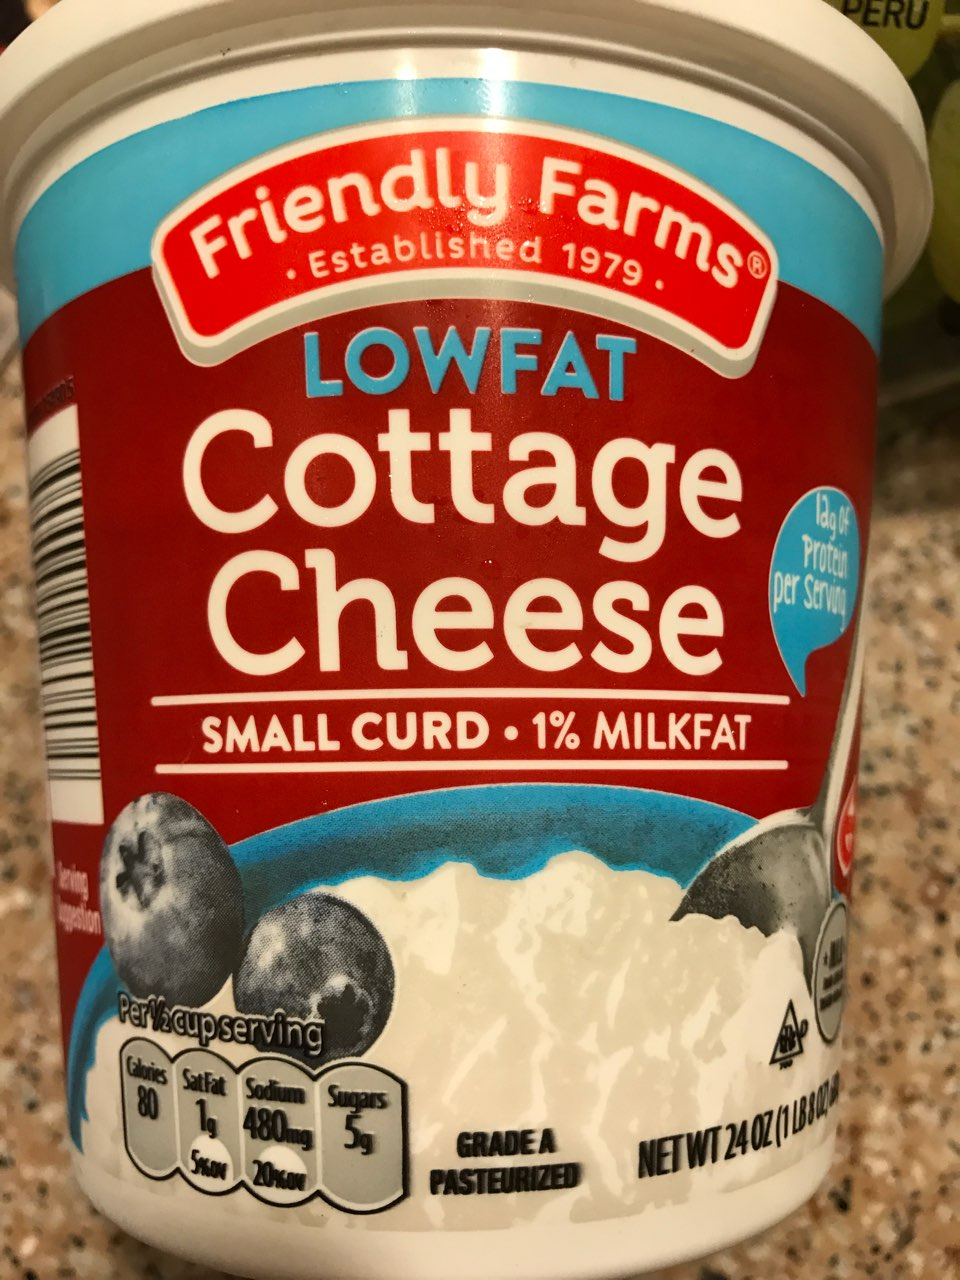 Friendly Farms Cottage Cheese Lowfat Small Curd Calories Nutrition Analysis More Fooducate